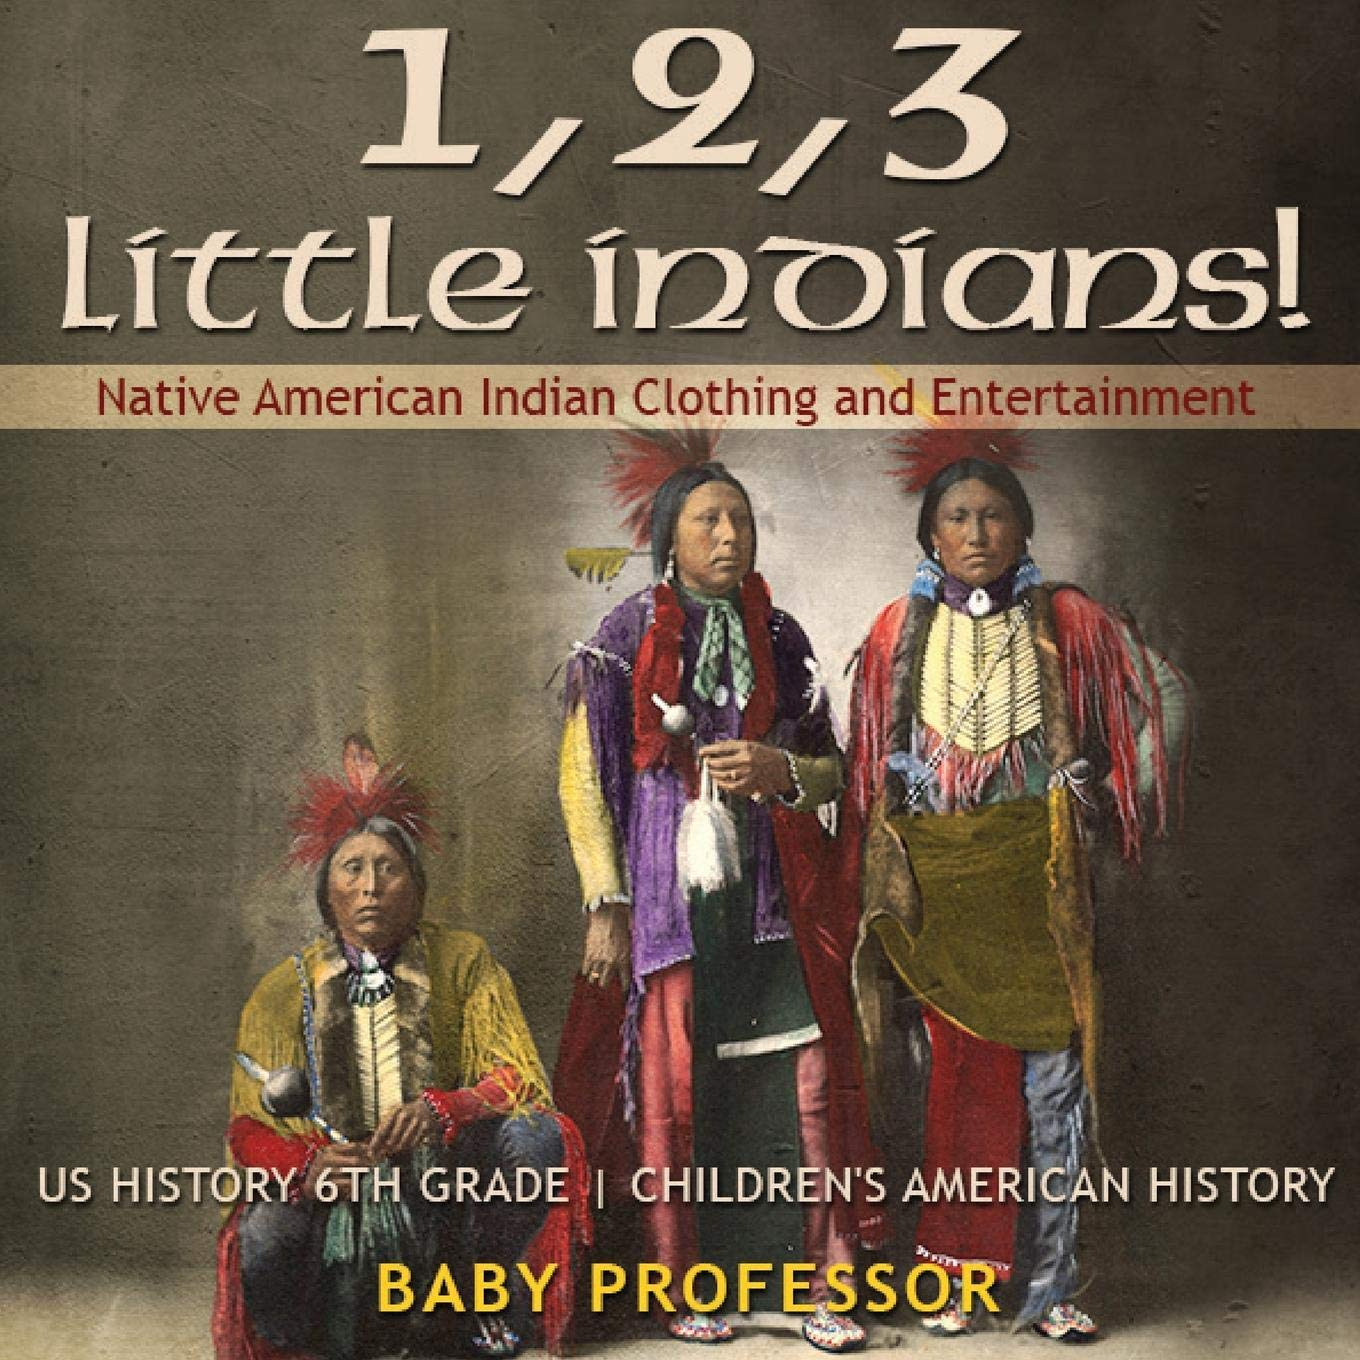 Download 1, 2, 3 Little Indians! Native American Indian Clothing and Entertainment - US History 6th Grade  Children's American History ebook